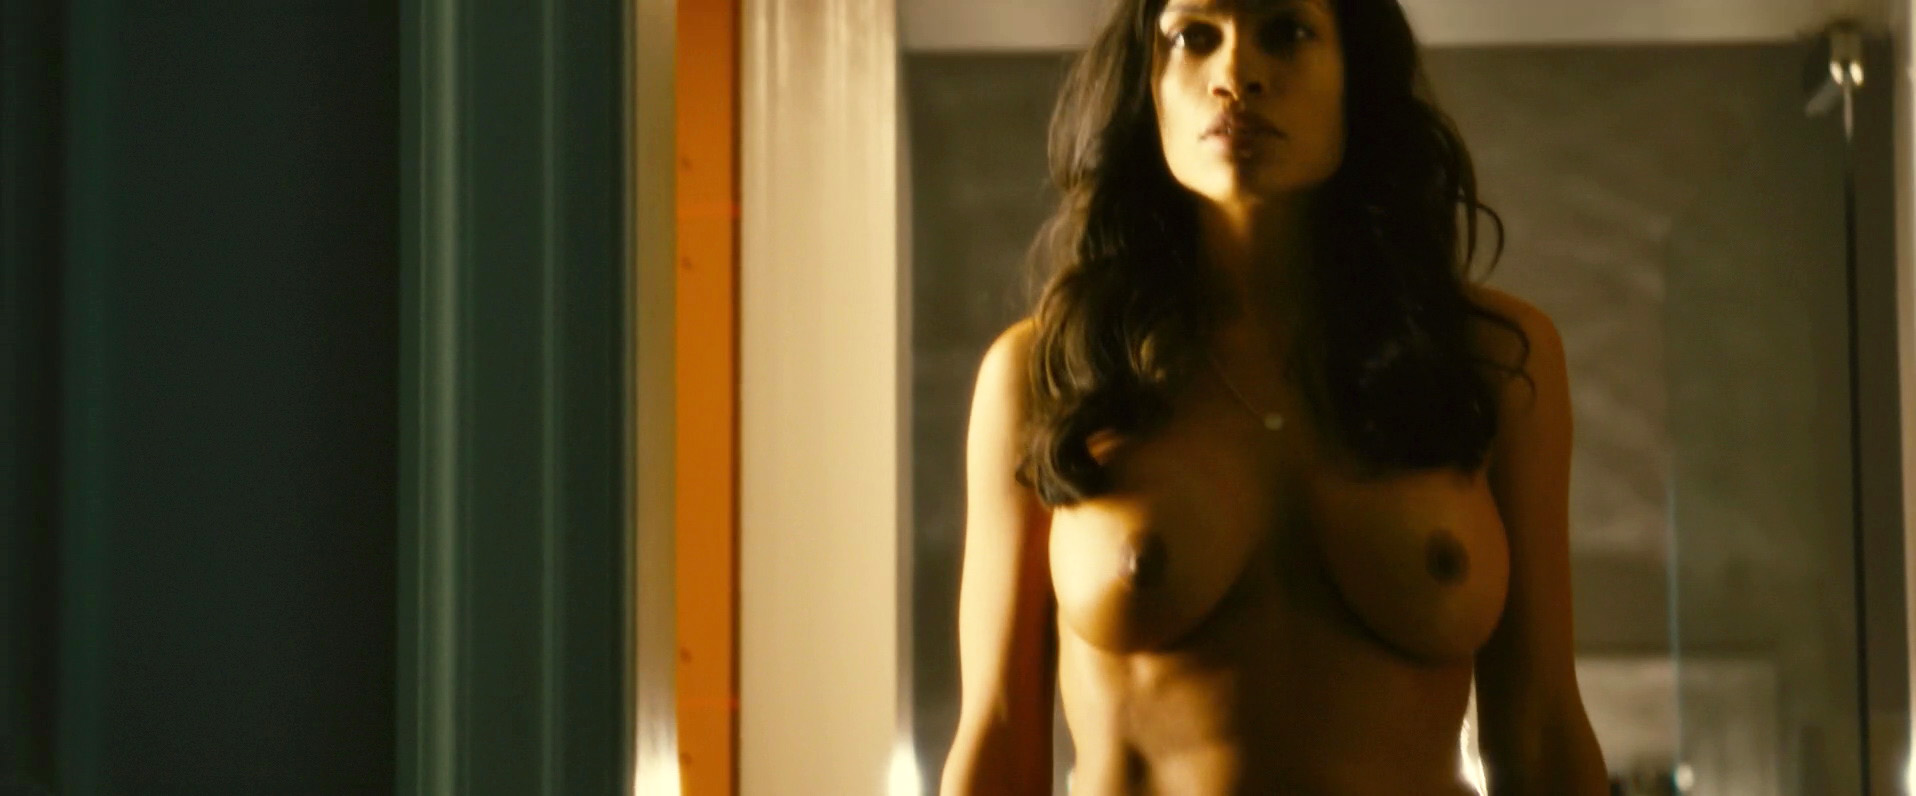 Thanks for Rosario dawson nude scene everything, that